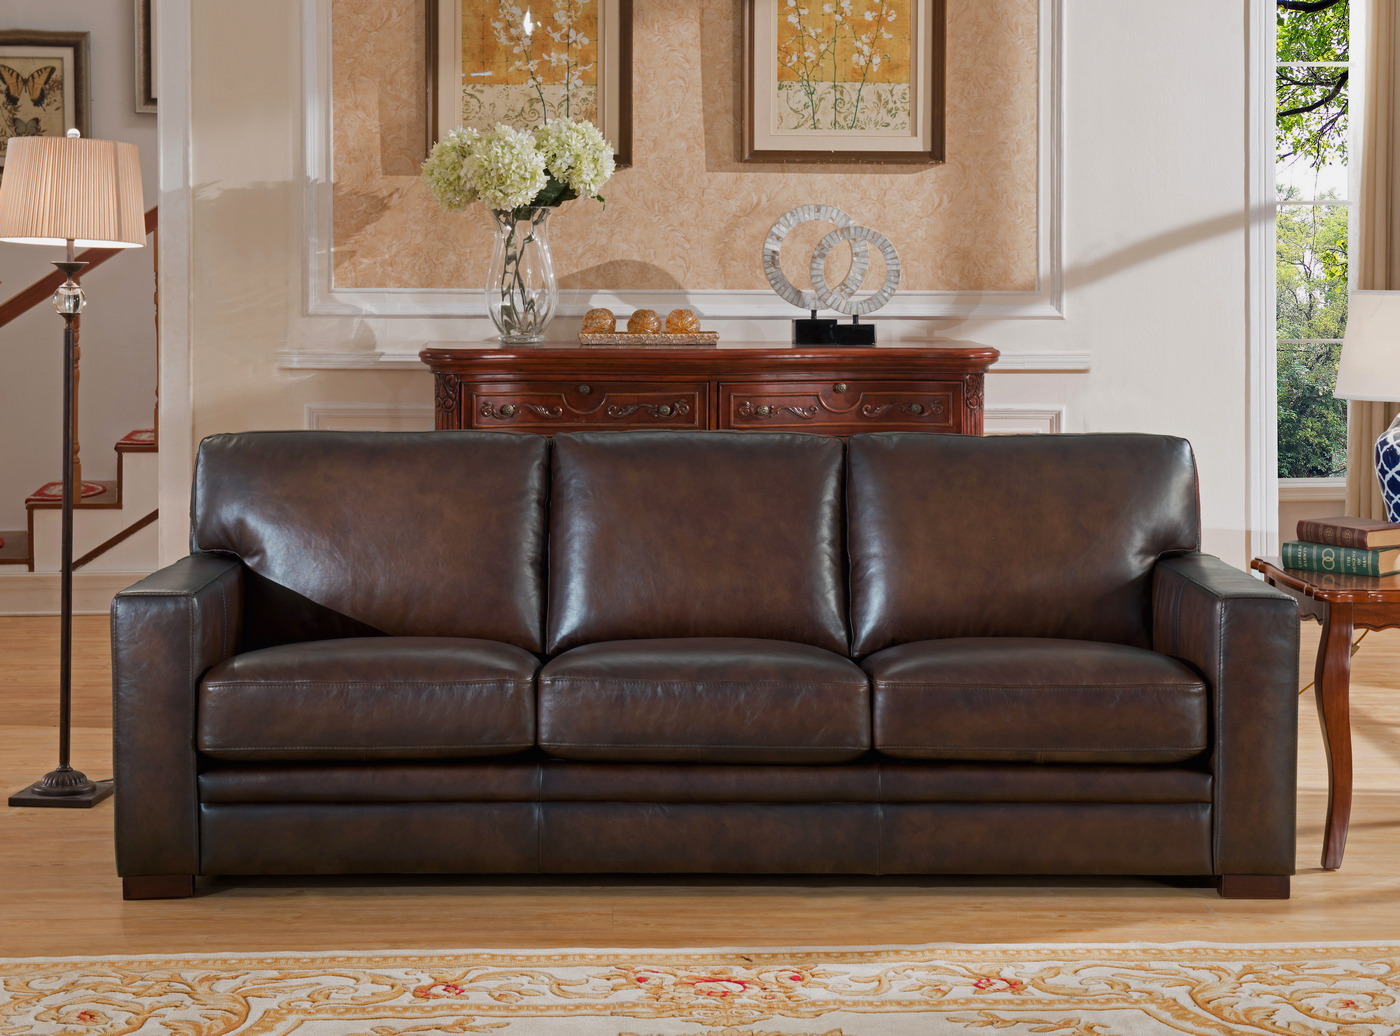 Chatsworth Casual 100 Genuine Leather Sofa In Hand Rubbed